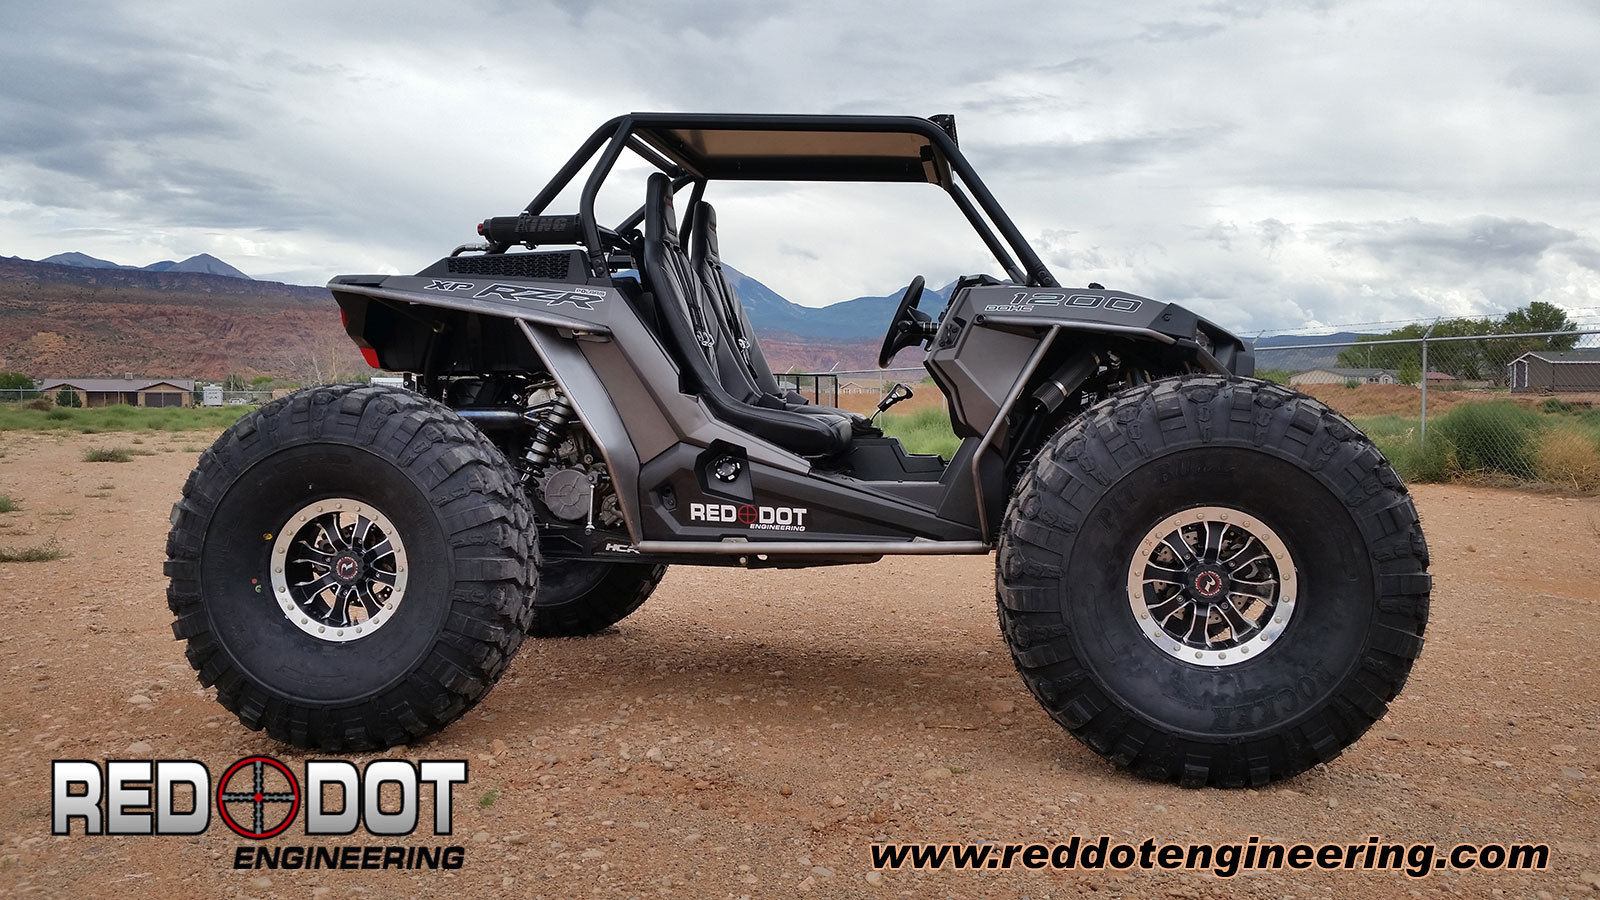 Red Dot Engineering Rock Crawler | Red Dot Engineering